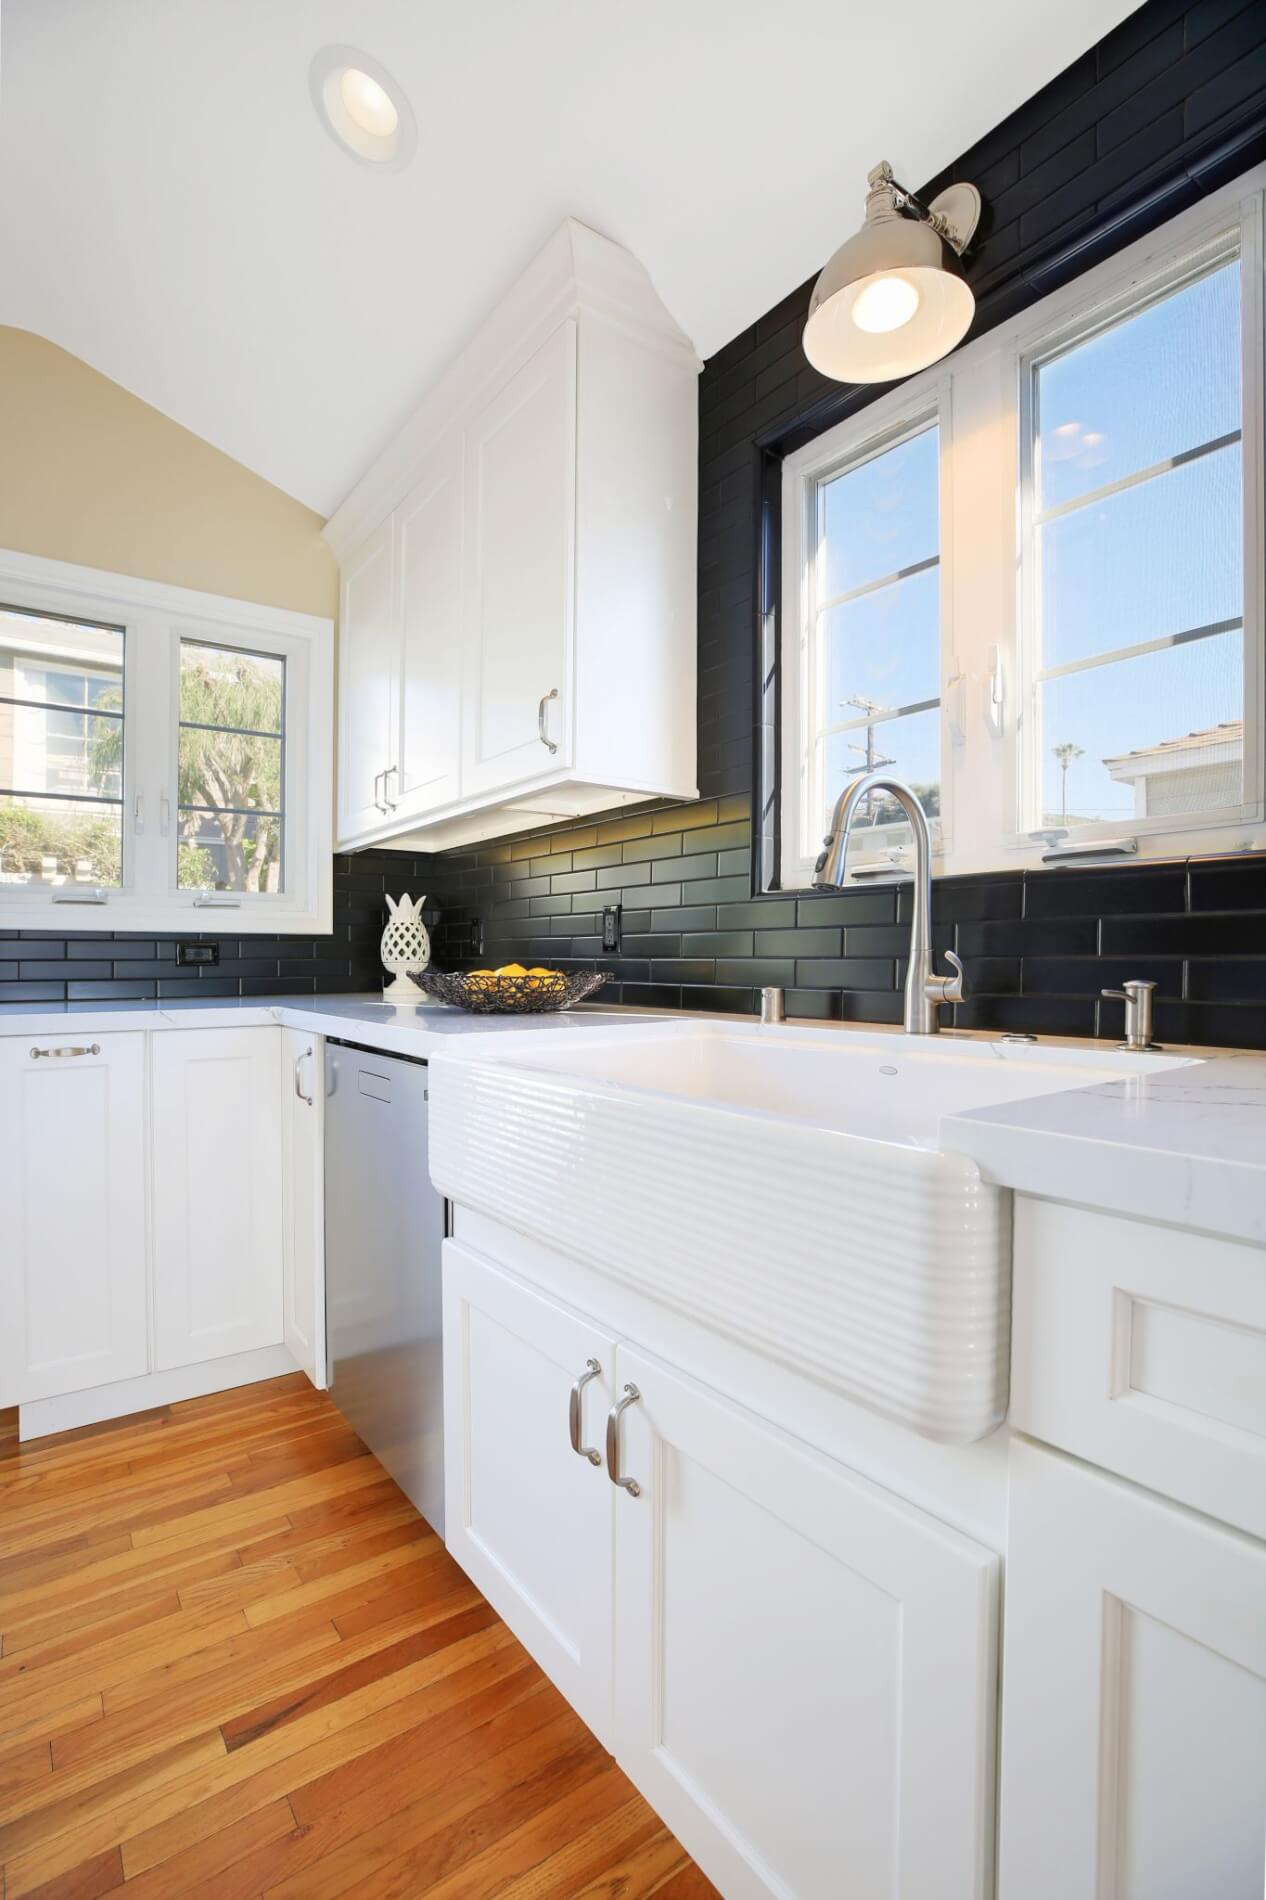 white kitchen cabinets with wood flooring and silver hardware details